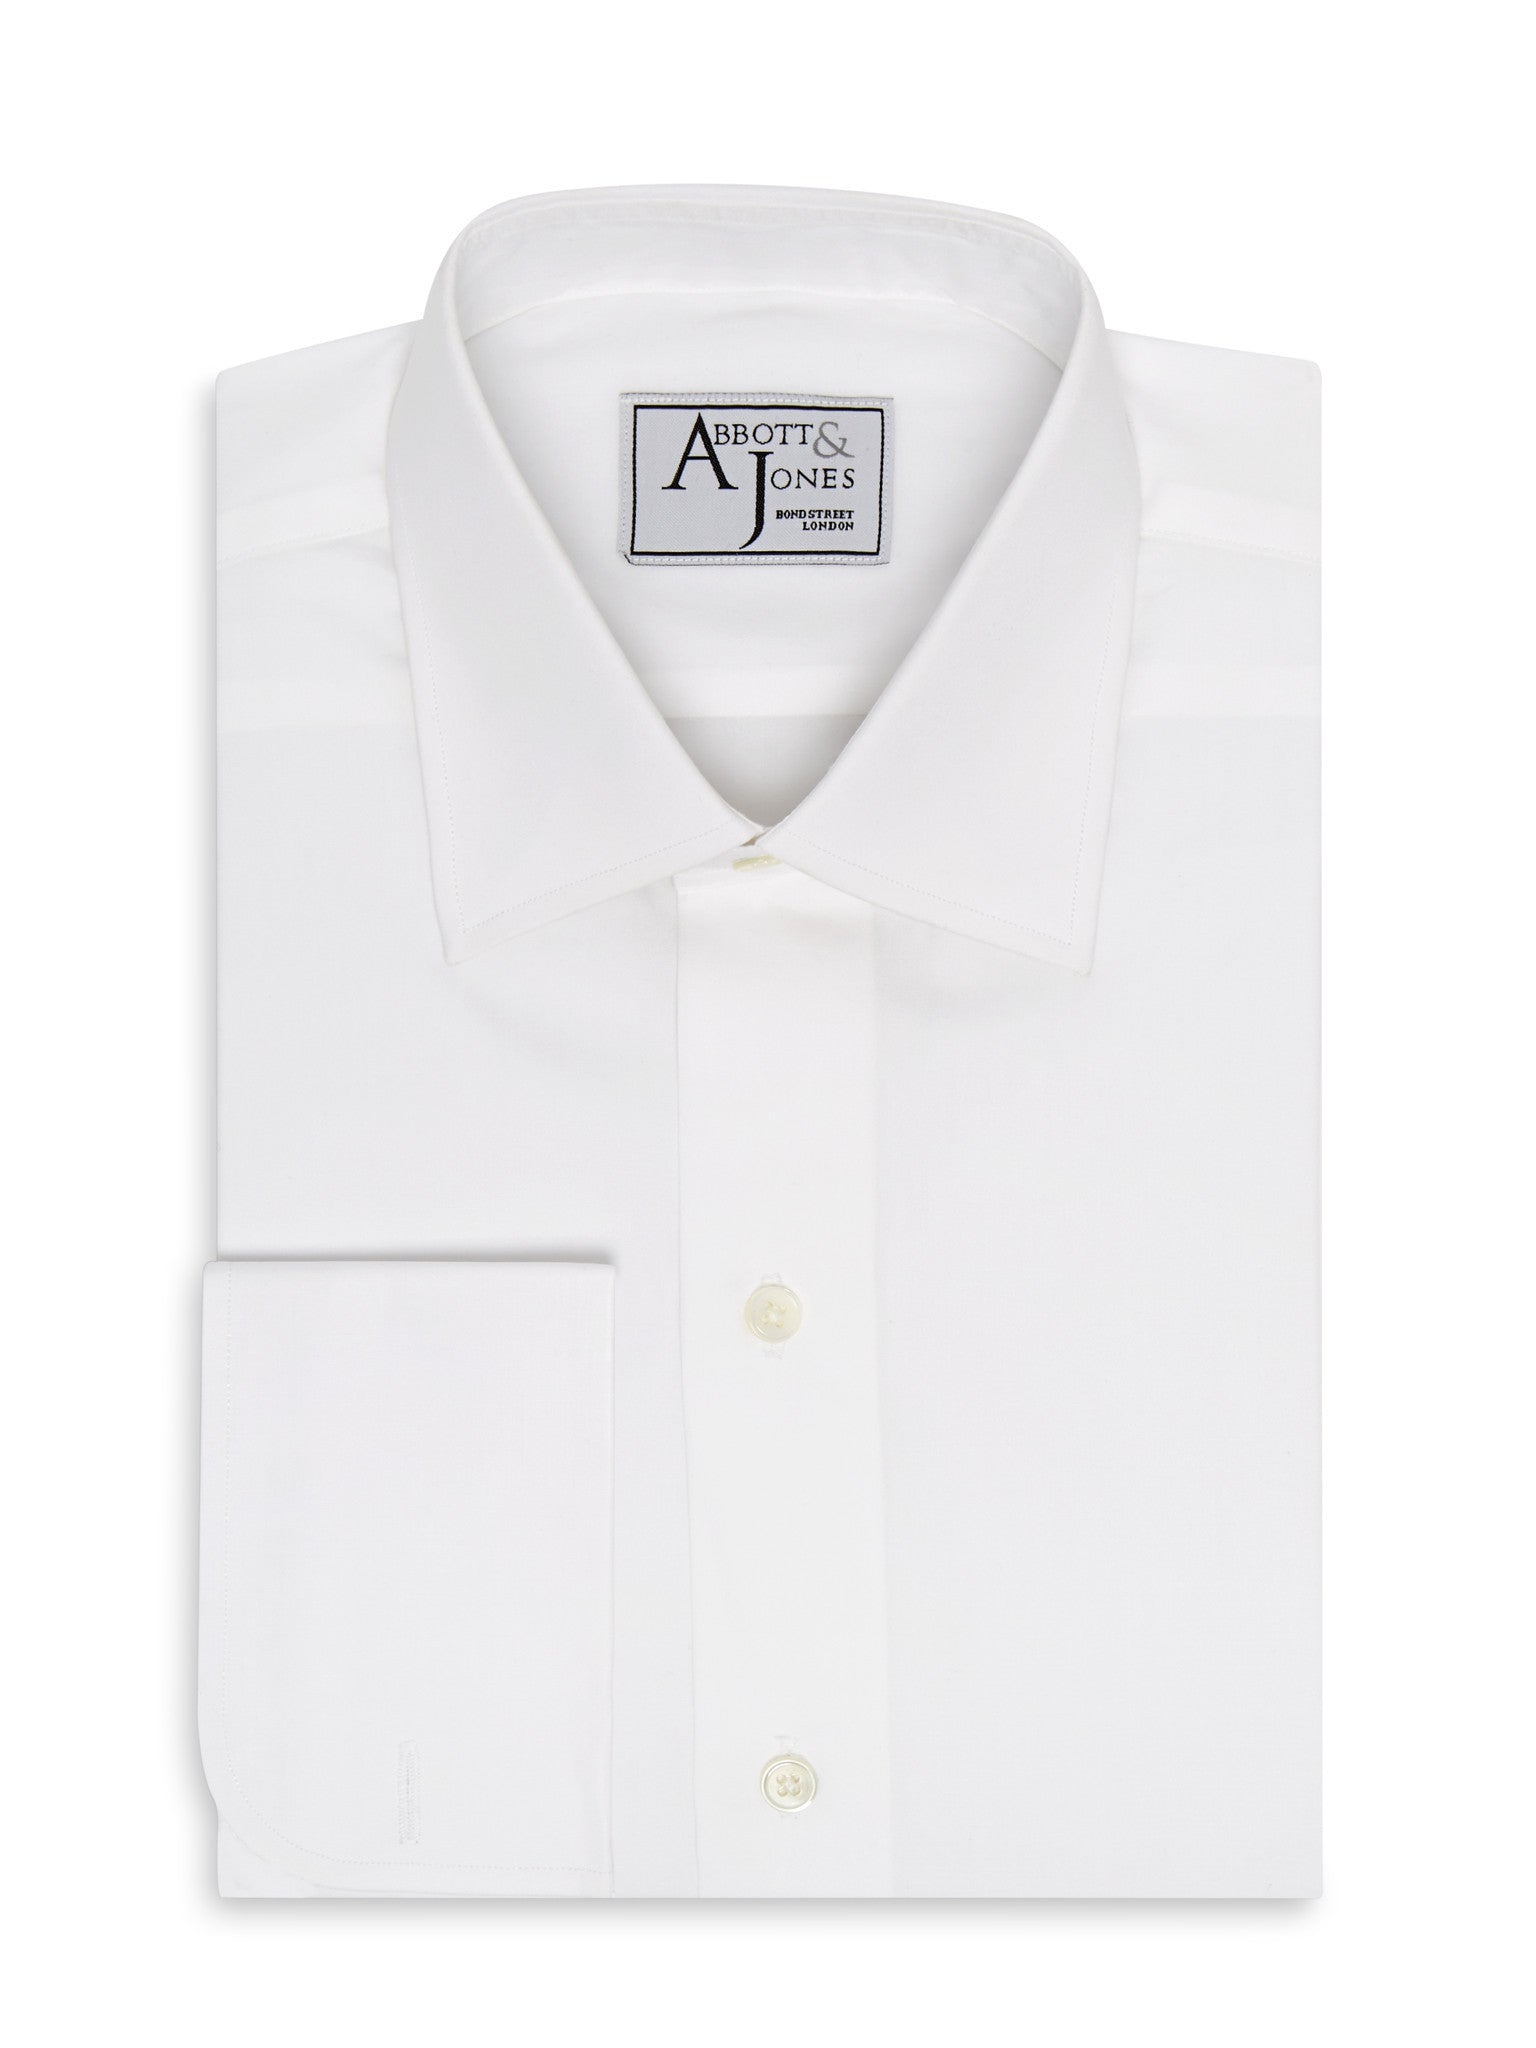 Bespoke - The Essential White Shirt - French Cuffs